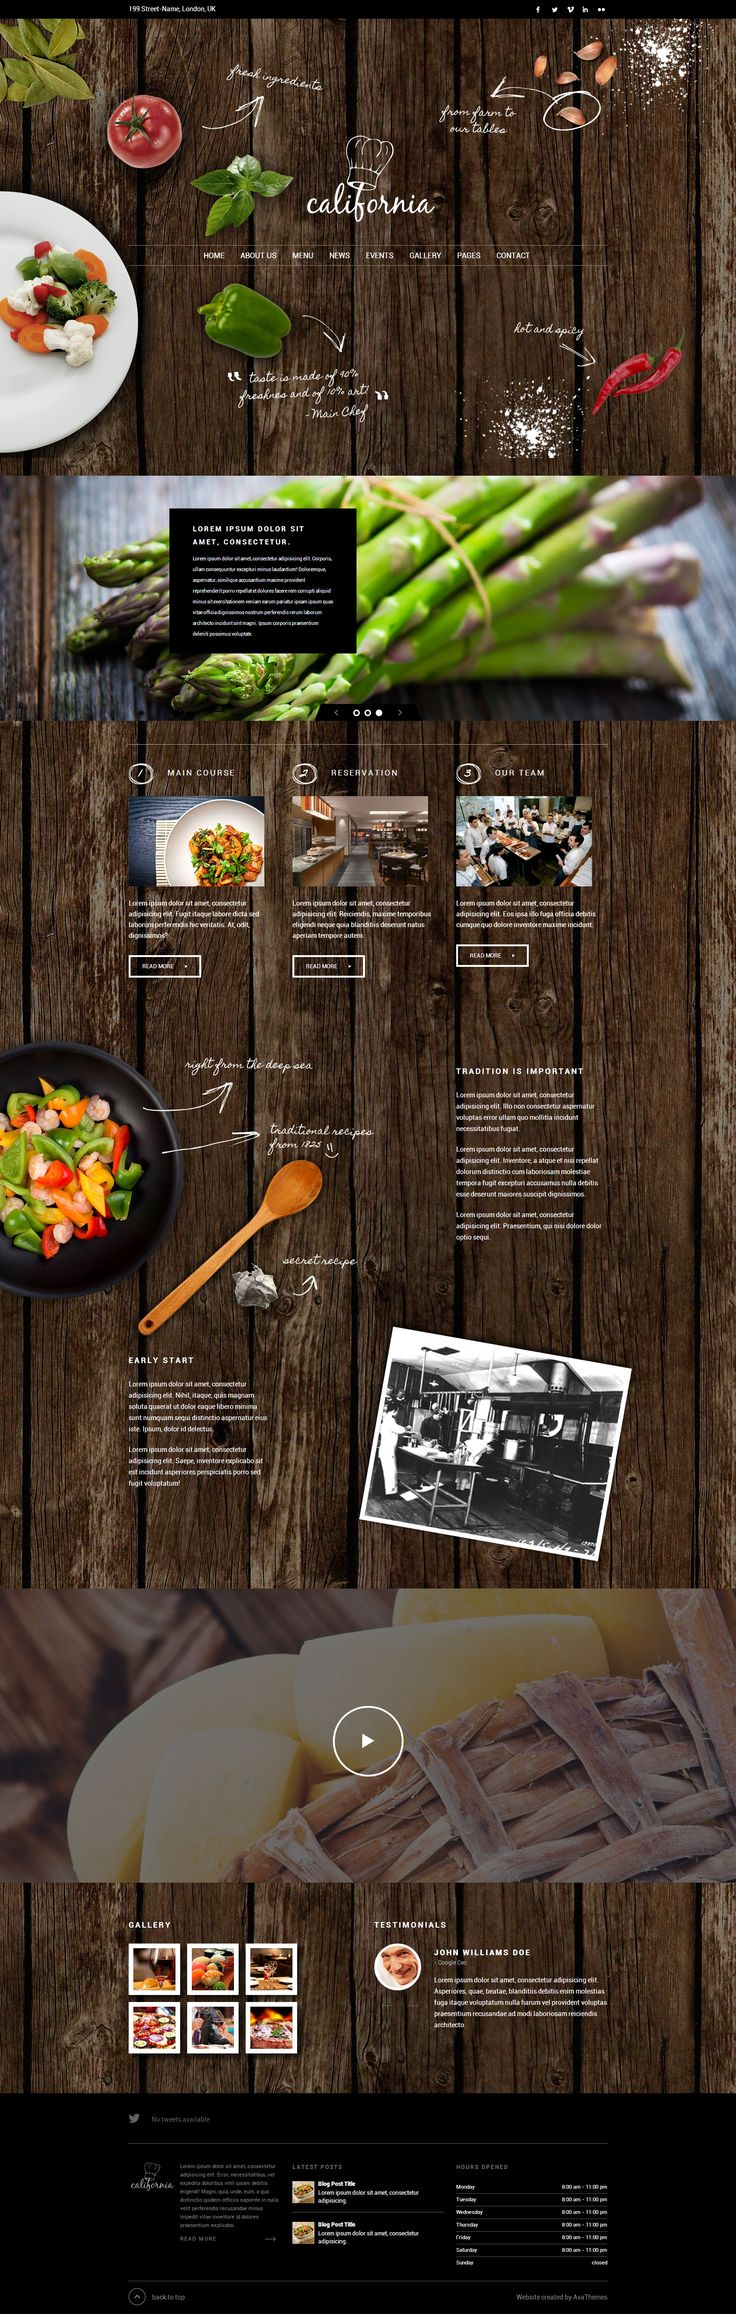 California - Restaurant Hotel Coffee Bar Website #web #design #restaurant http://www.amazon.com/gp/product/B018P97X0C